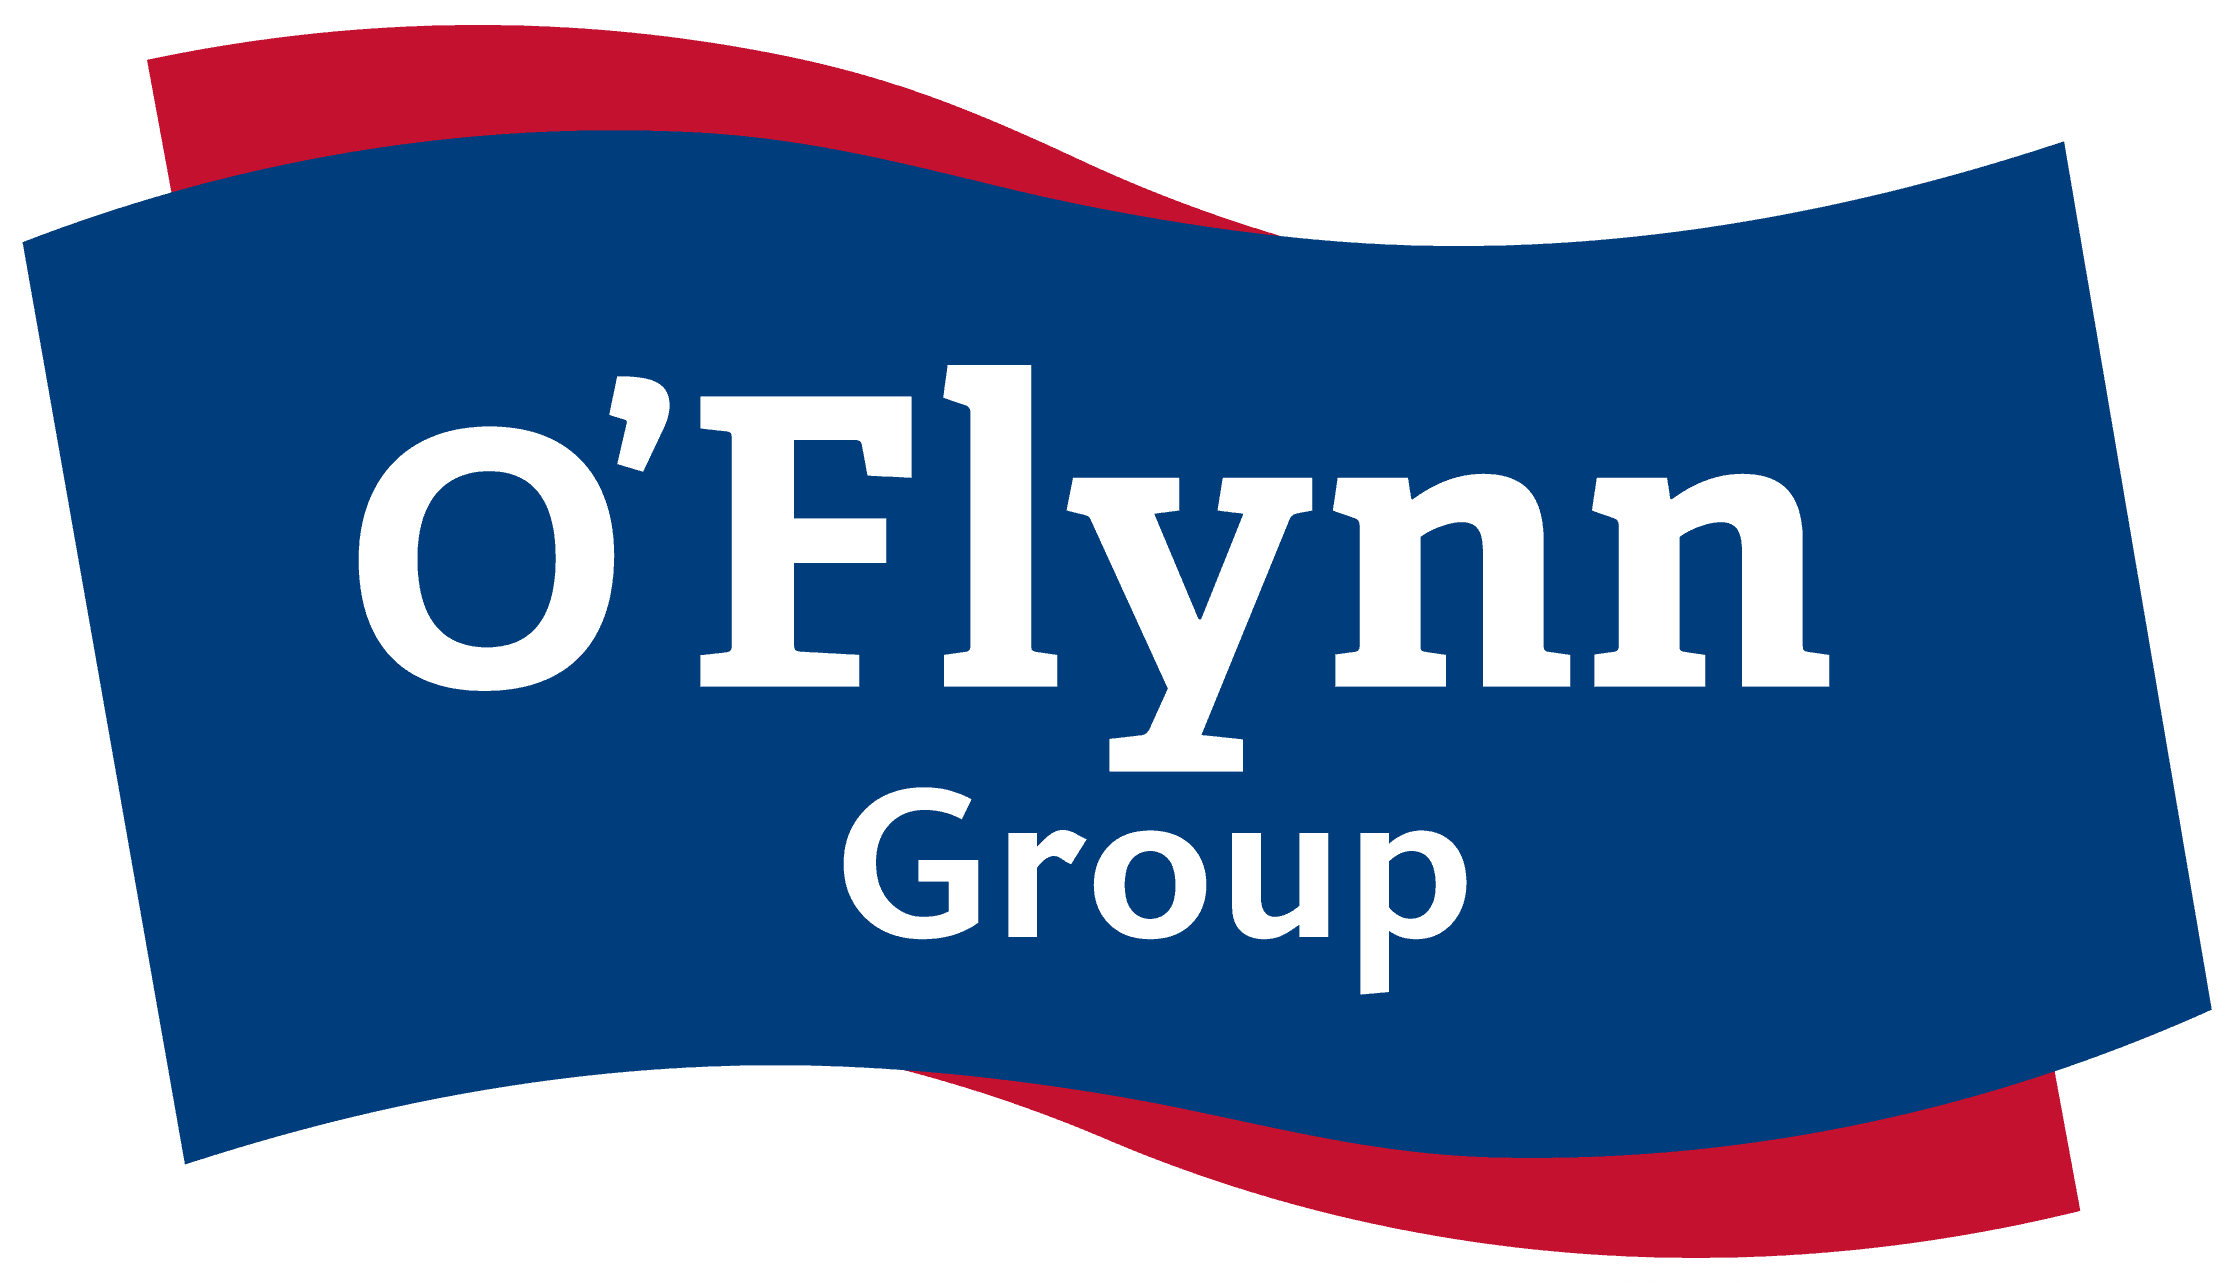 O'Flynn Group logo